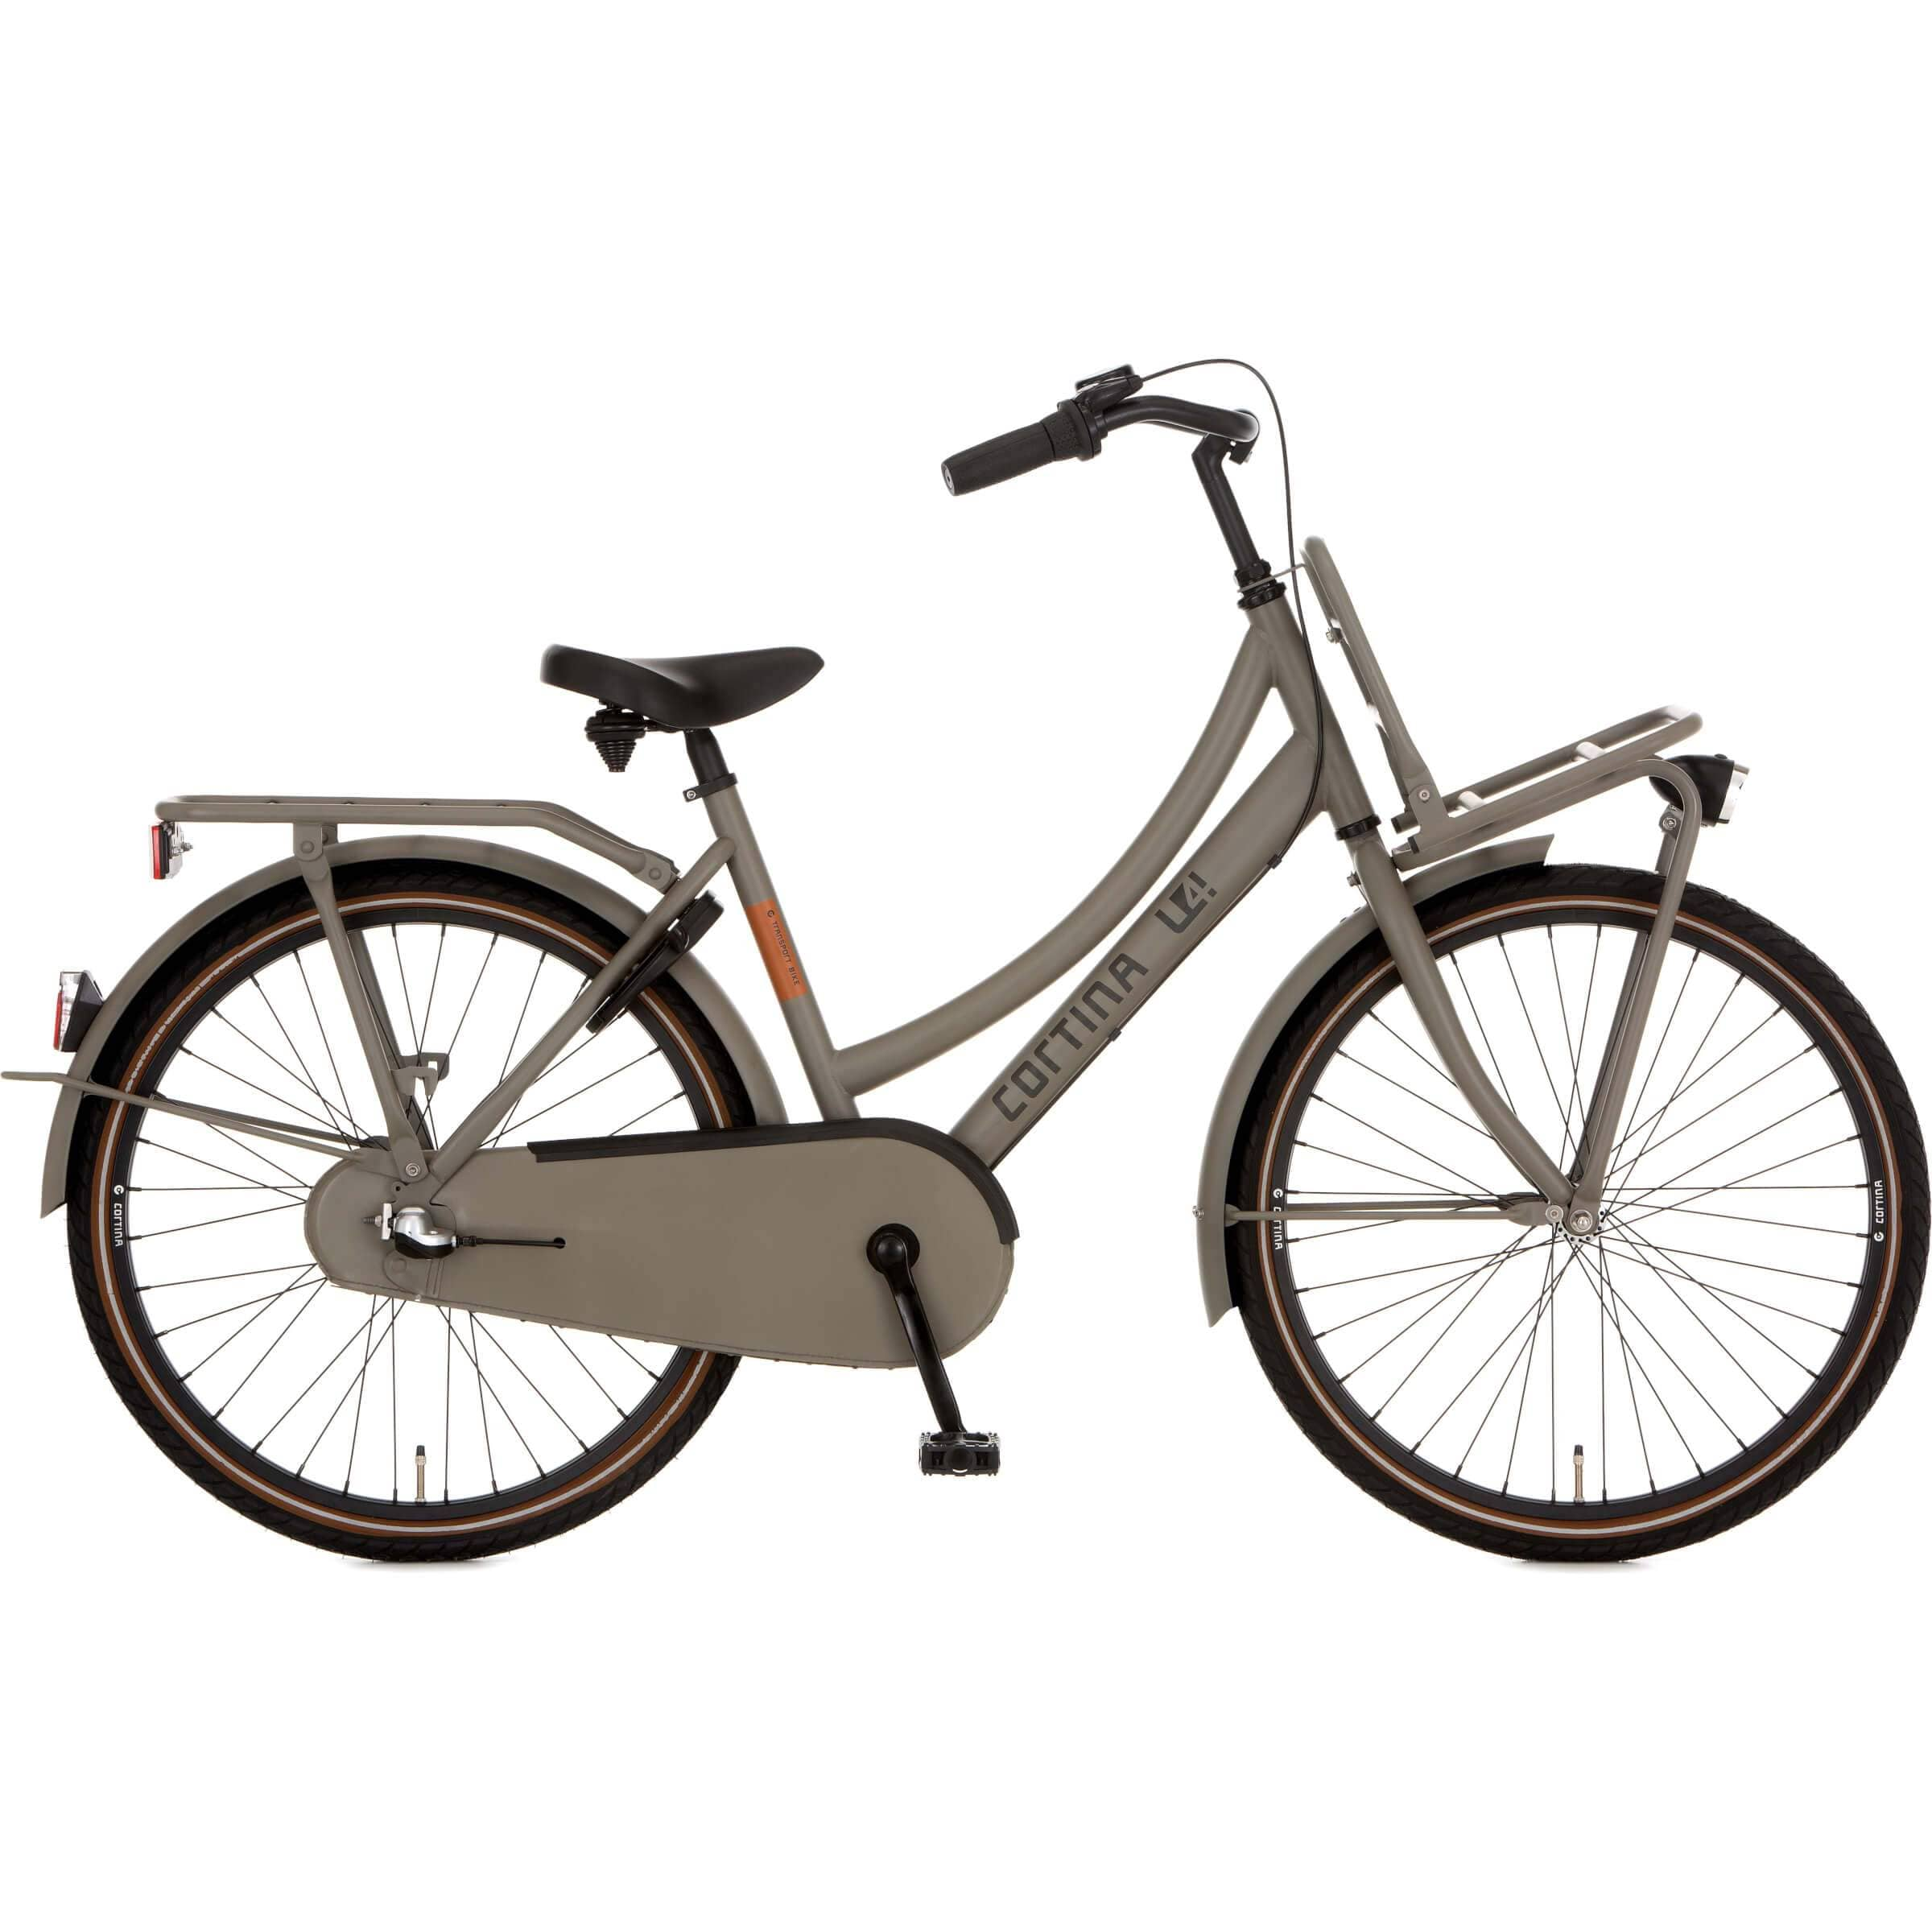 Cortina U4 Transport Solid Mini RN3 26 inch 2020 Meisjes - Fietsenconcurrent.nl